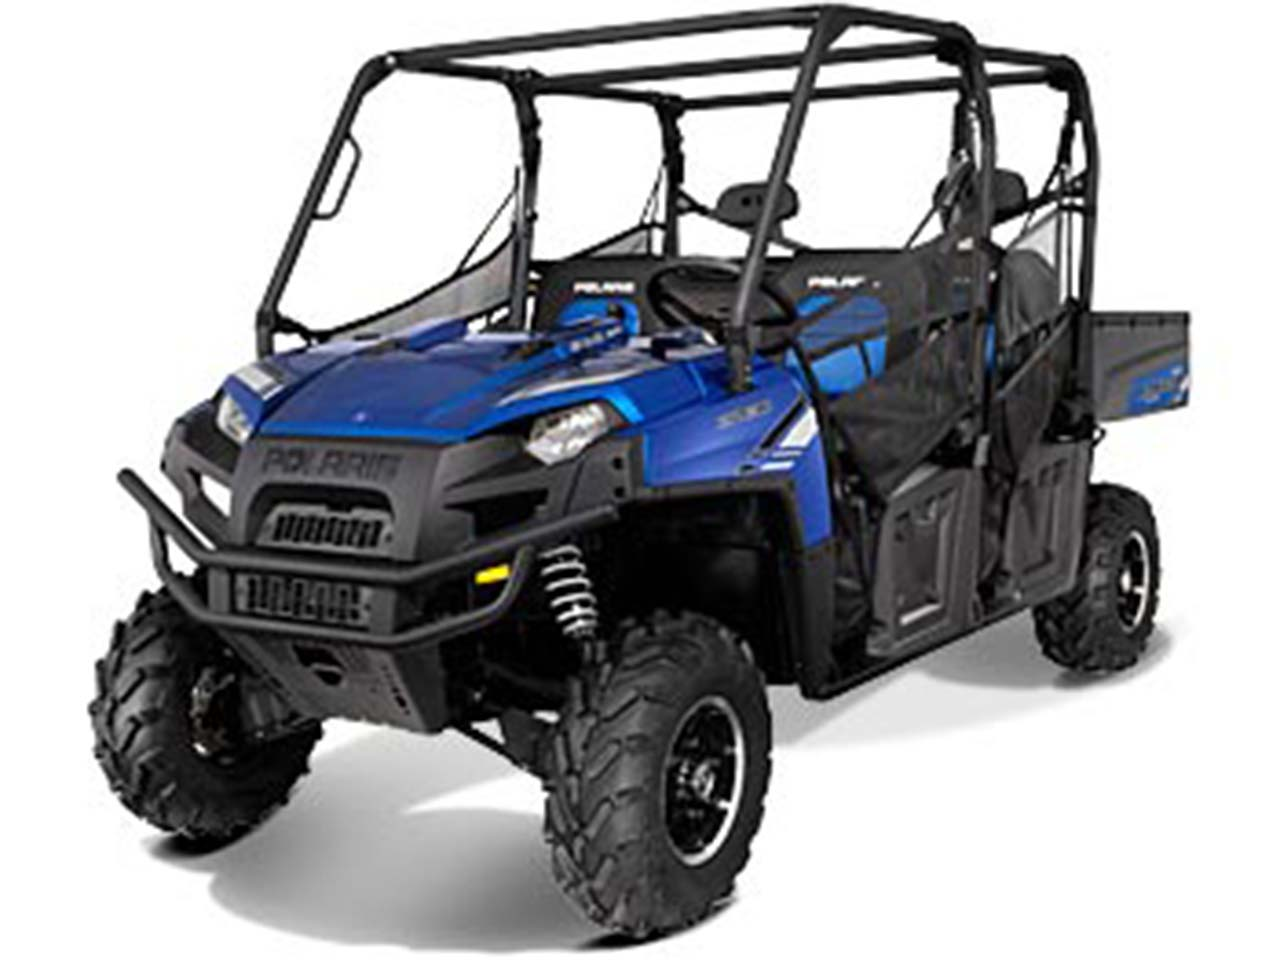 Polaris ranger photo - 2